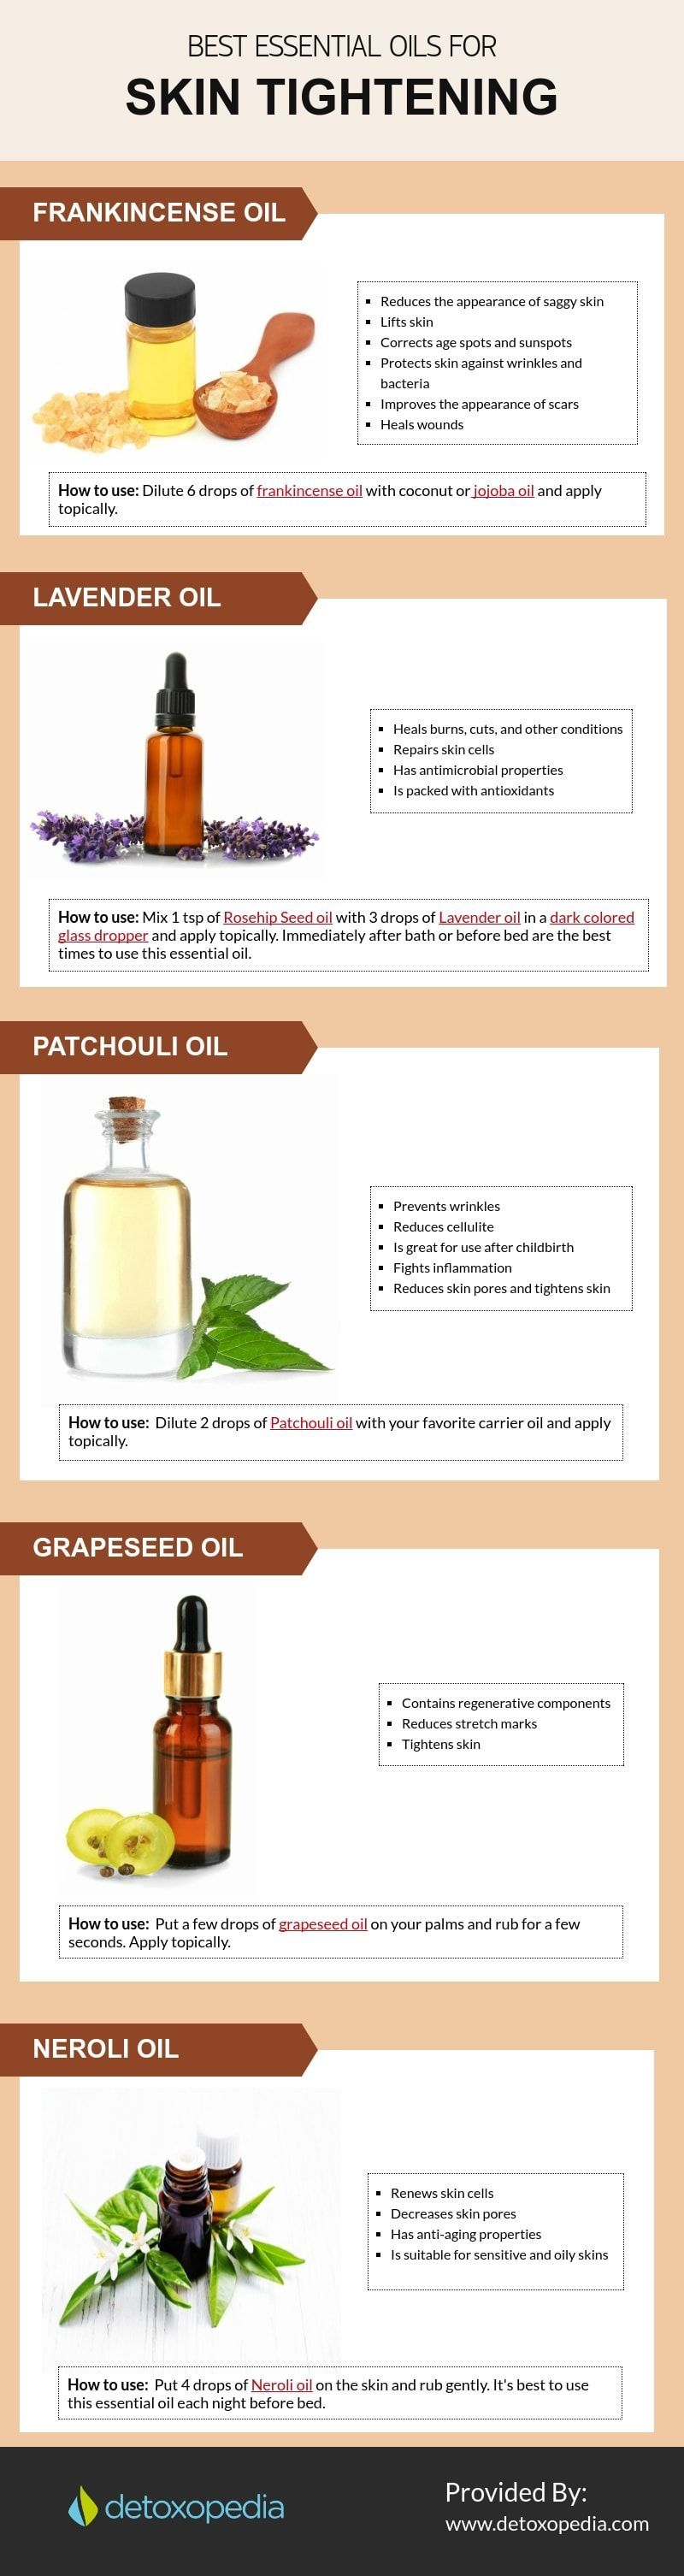 Pin on Essential Oils/Frankincense Essential Oils Views